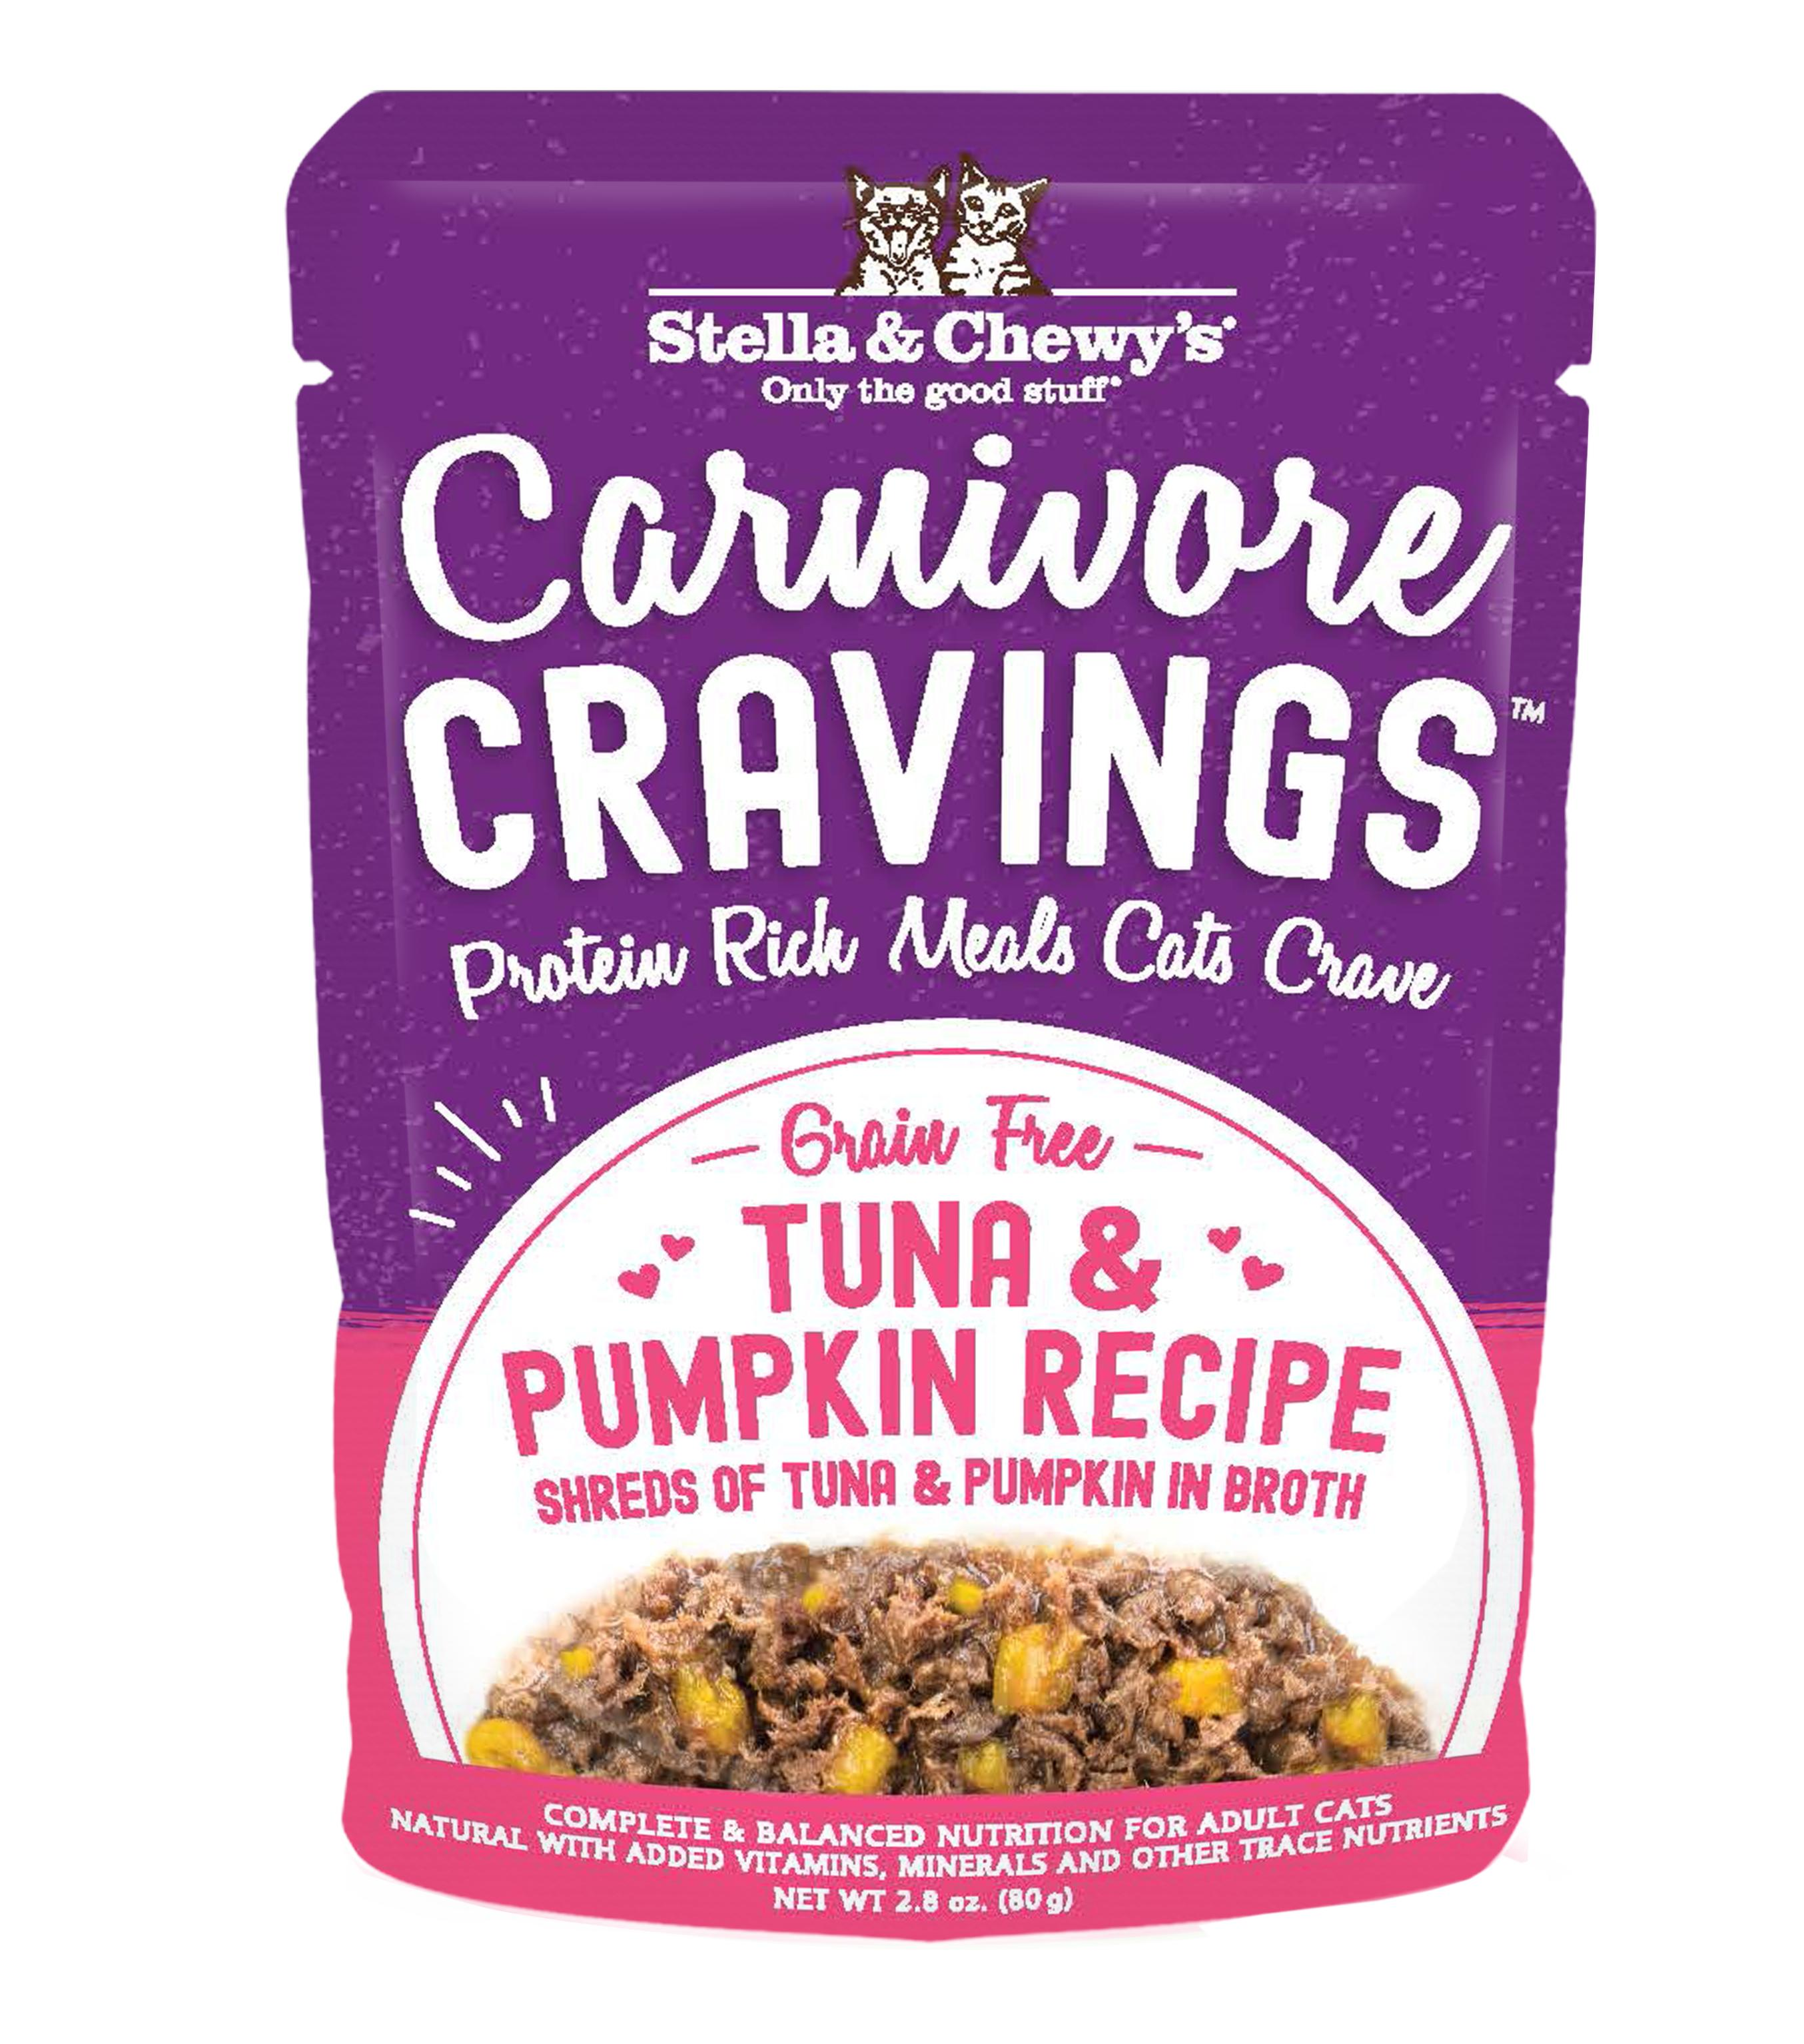 Stella & Chewy's Carnivore Cravings Tuna & Pumpkin Wet Cat Food, 2.8-oz pouch